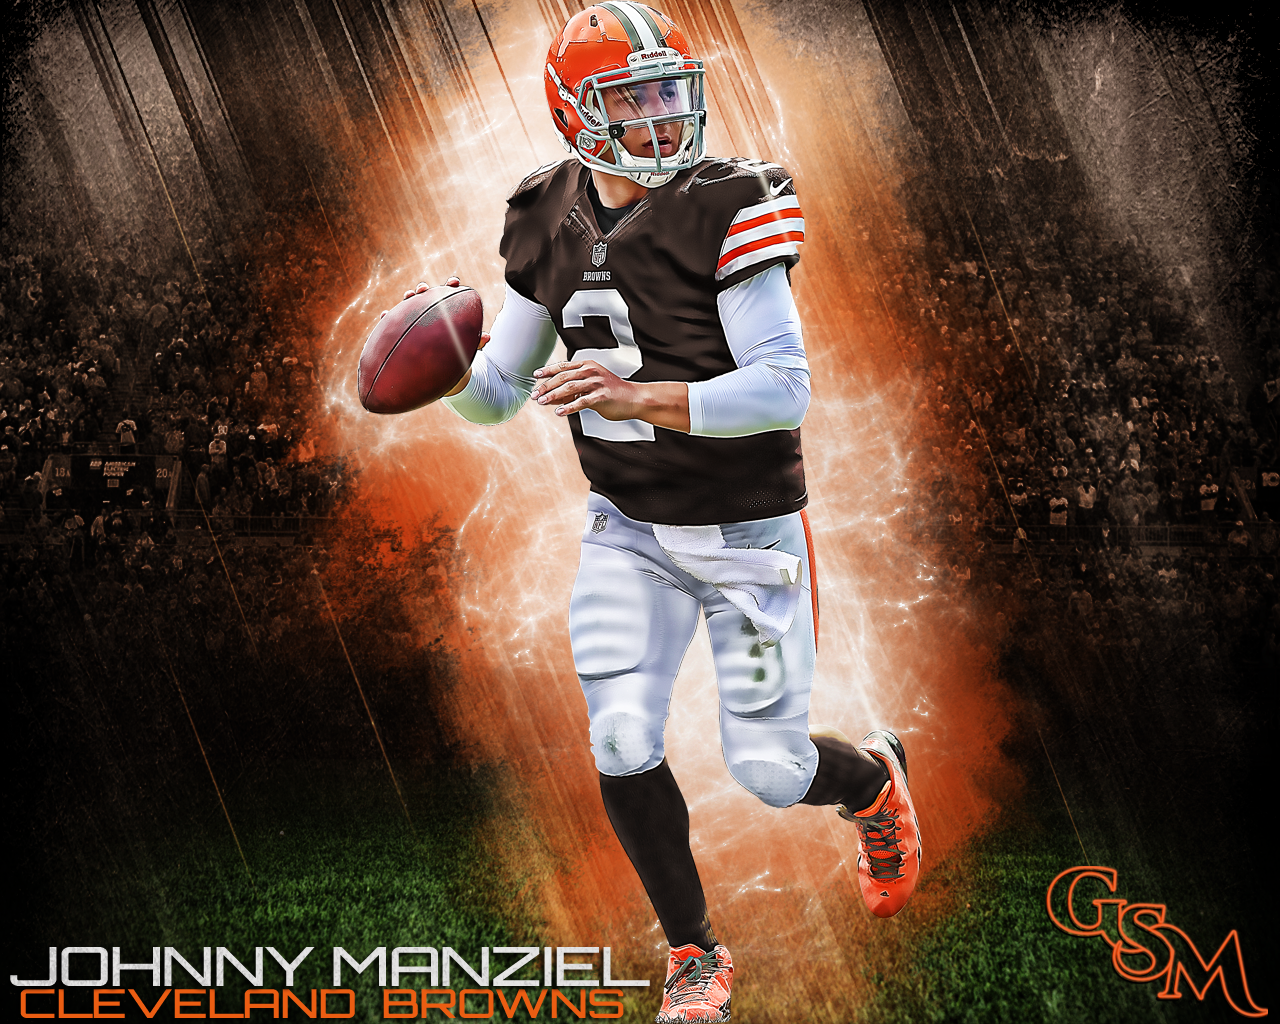 """Brian Konnick On Twitter: """"Johnny Manziel Cleveland Browns"""